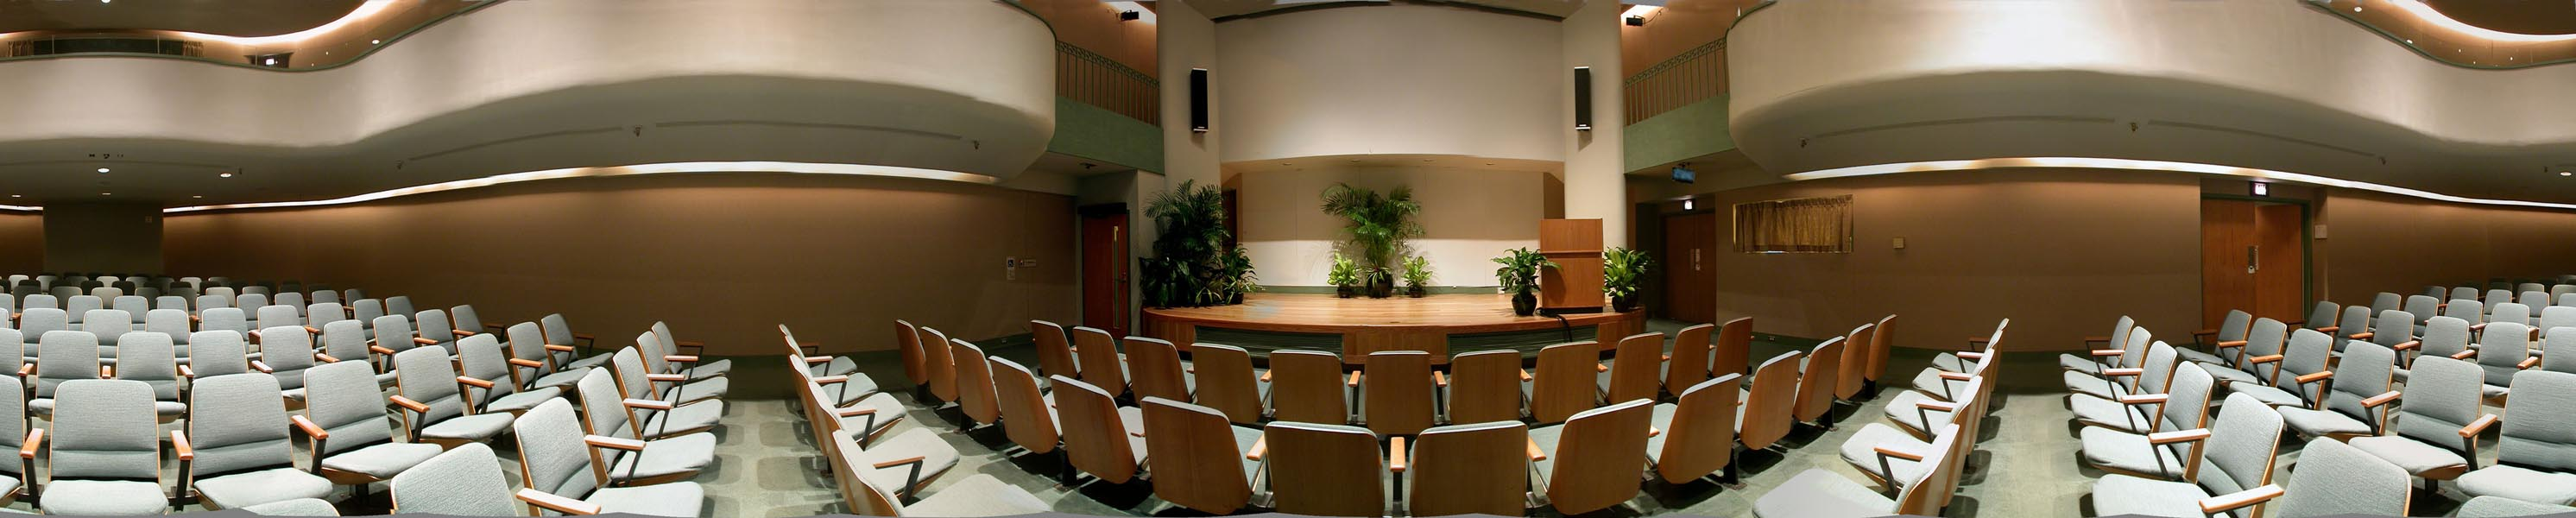 lecture hall panoramic